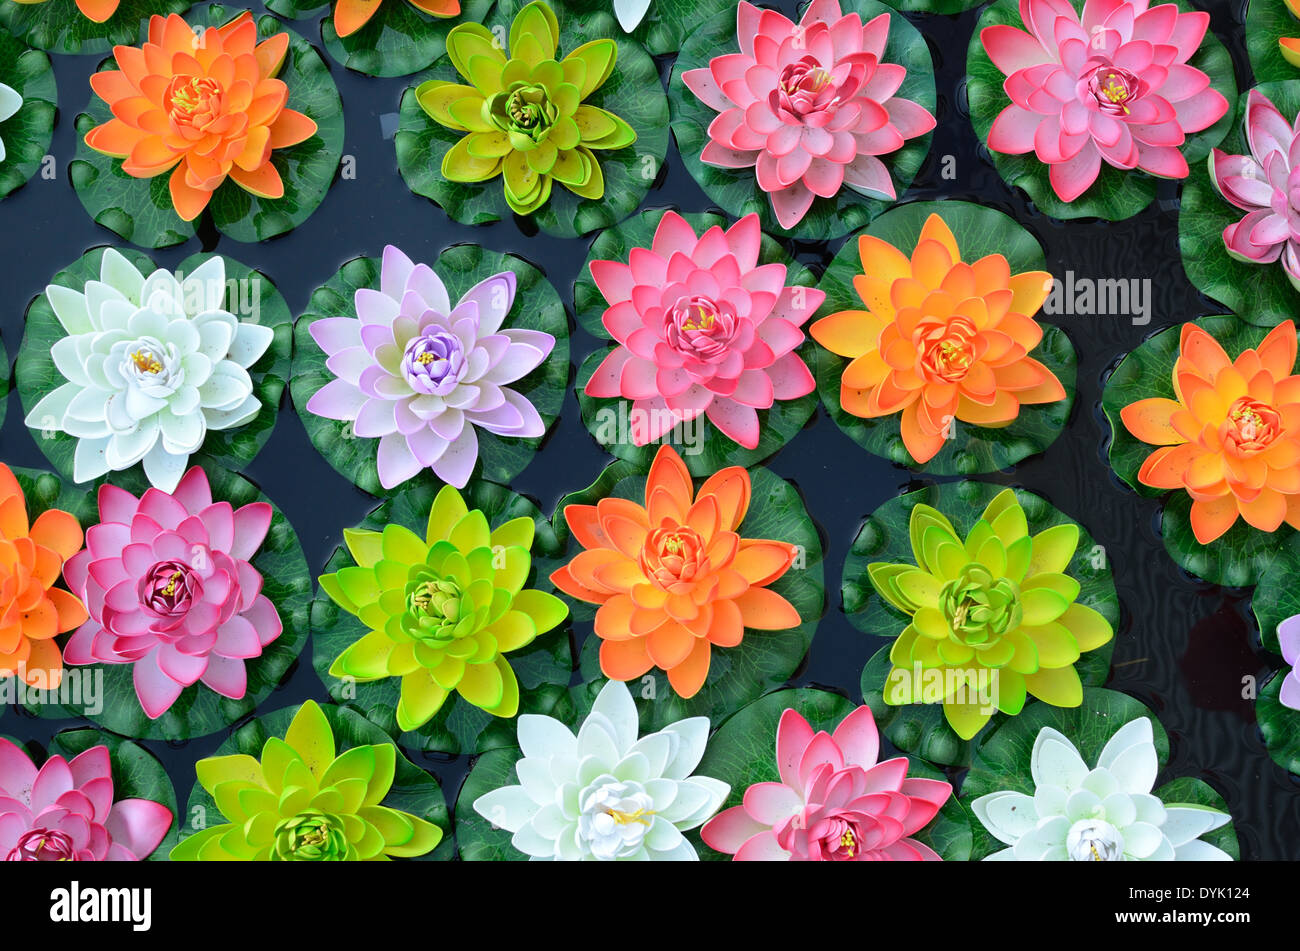 Colourful Blooms Pattern or Colorful Display of Plastic Lotus Flowers or Water Lilies - Stock Image